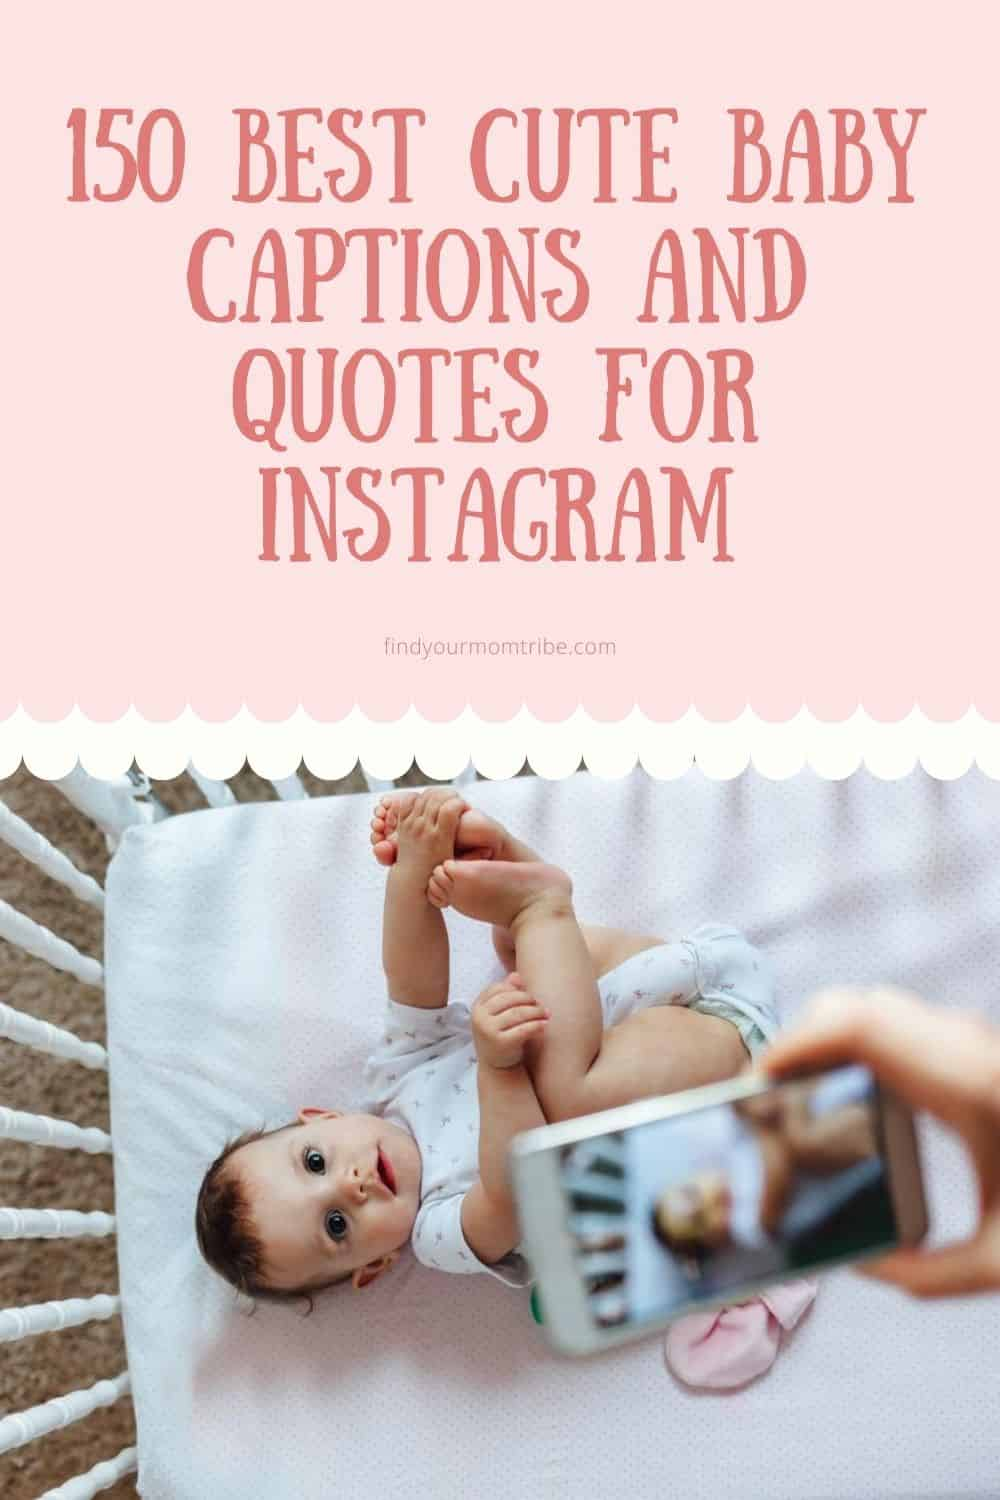 150 Best Cute Baby Captions And Quotes For Instagram